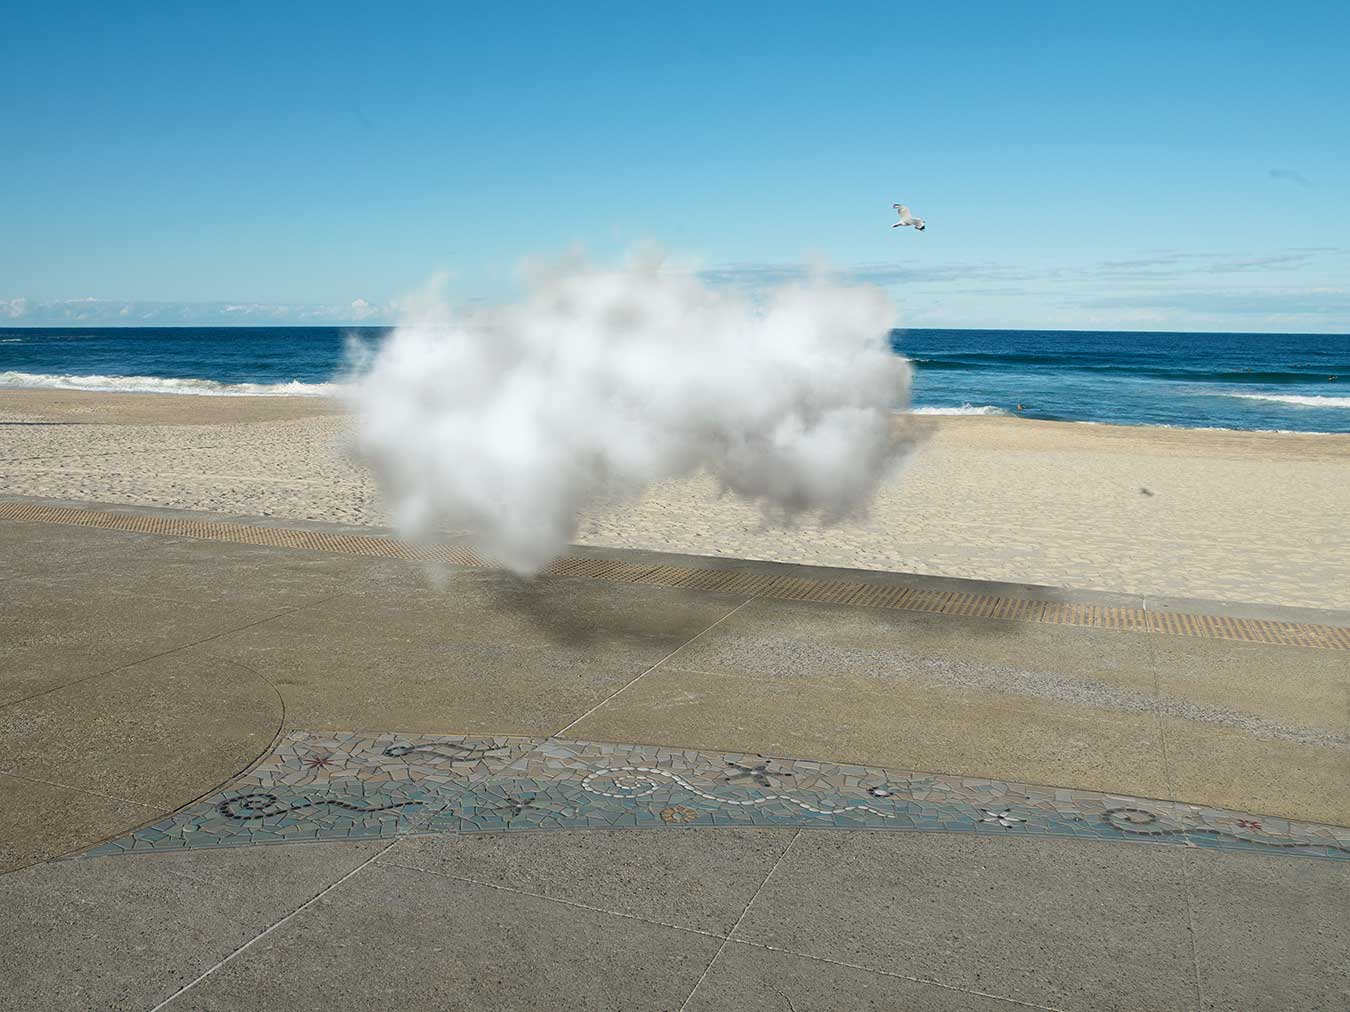 white-fluffy-cloud-at-the-beach-at-ground-level